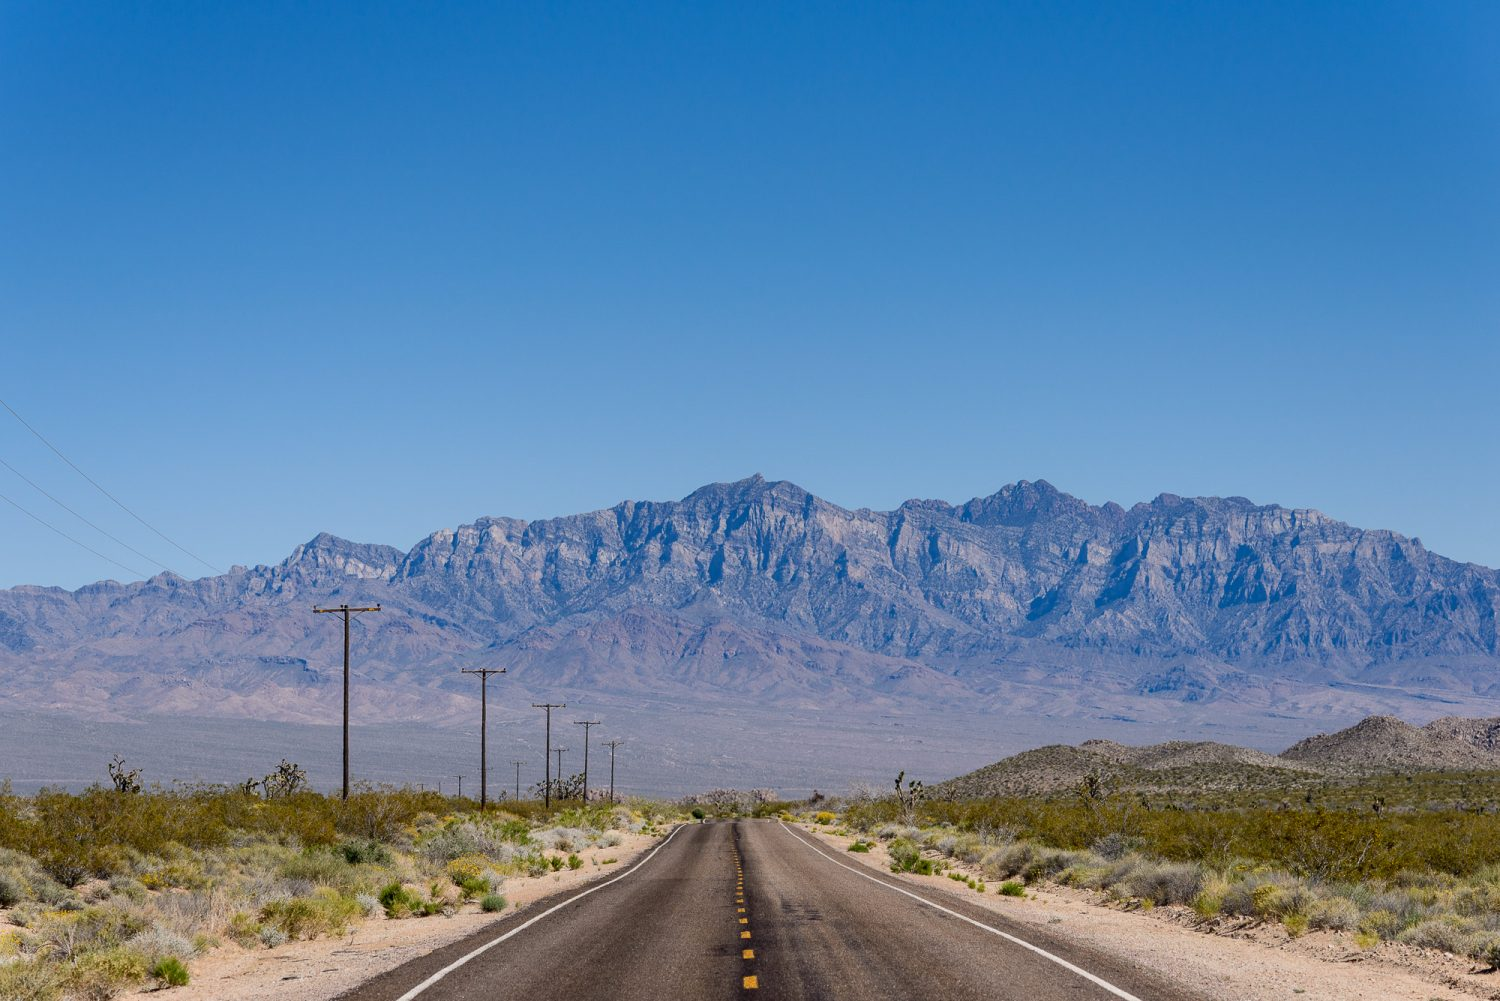 Desolate road in the Mojave Desert